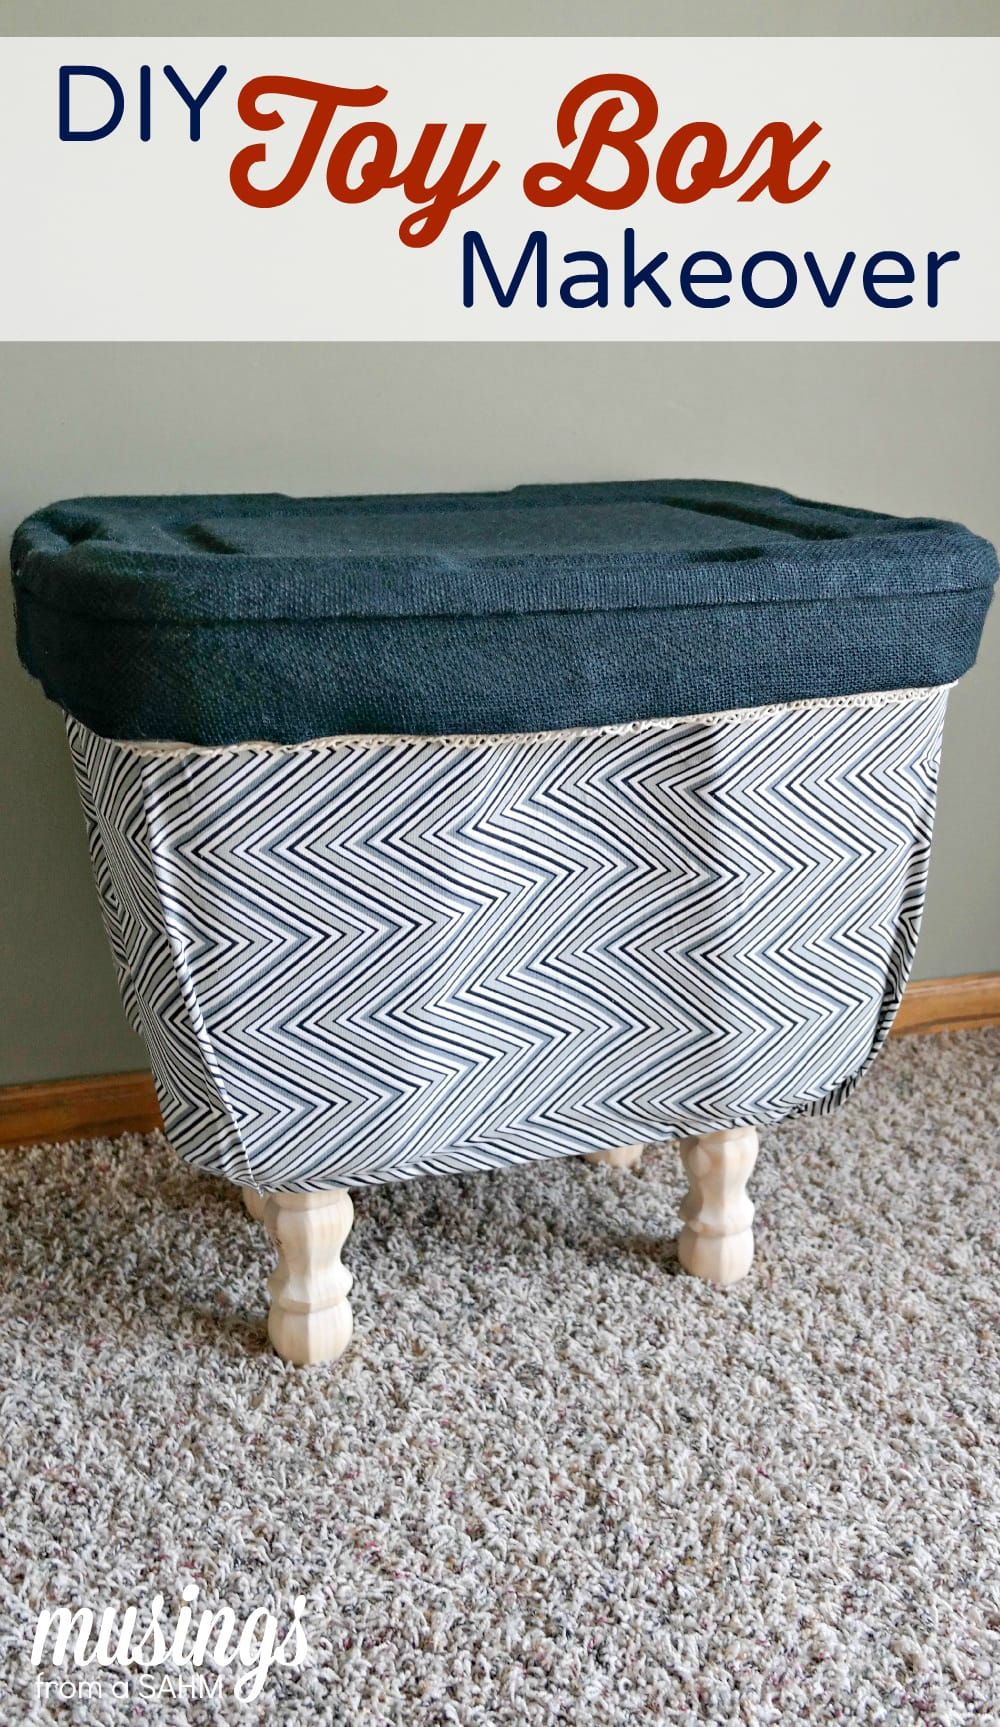 DIY Toy Box Makeover: How to turn an ugly plastic bin into a decorated ...